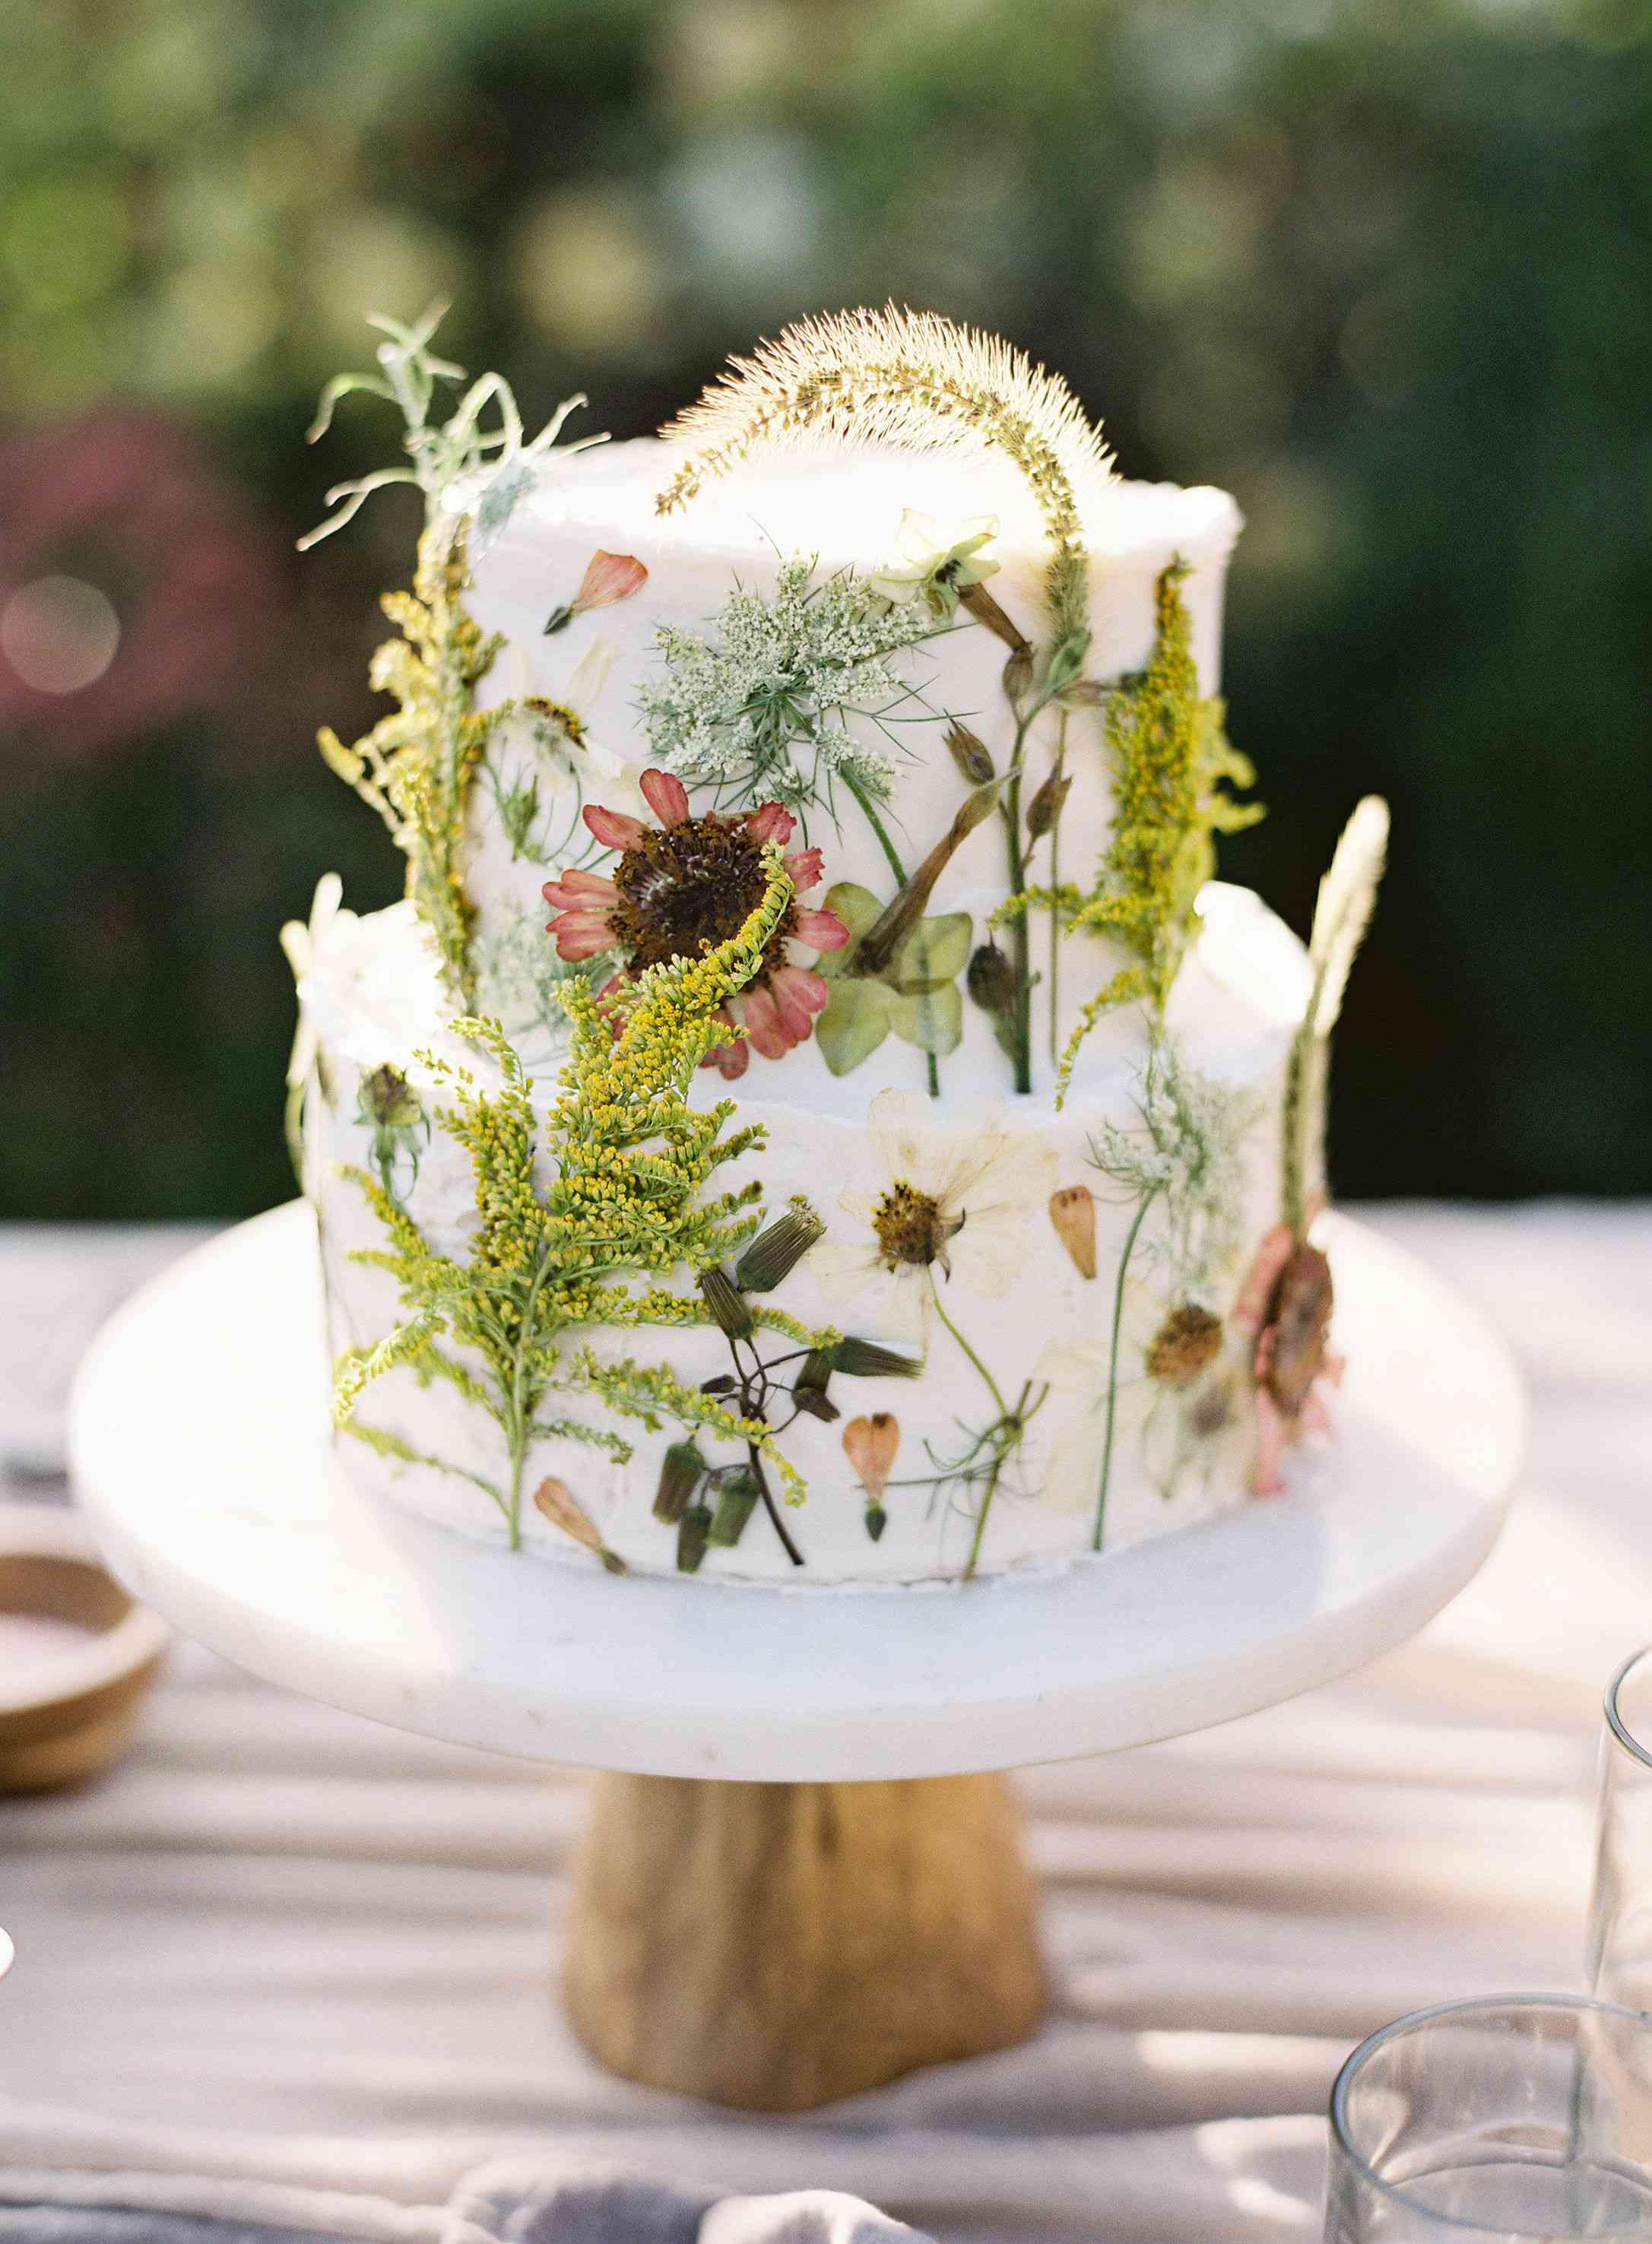 Two-tiered white wedding cake covered in dried flowers